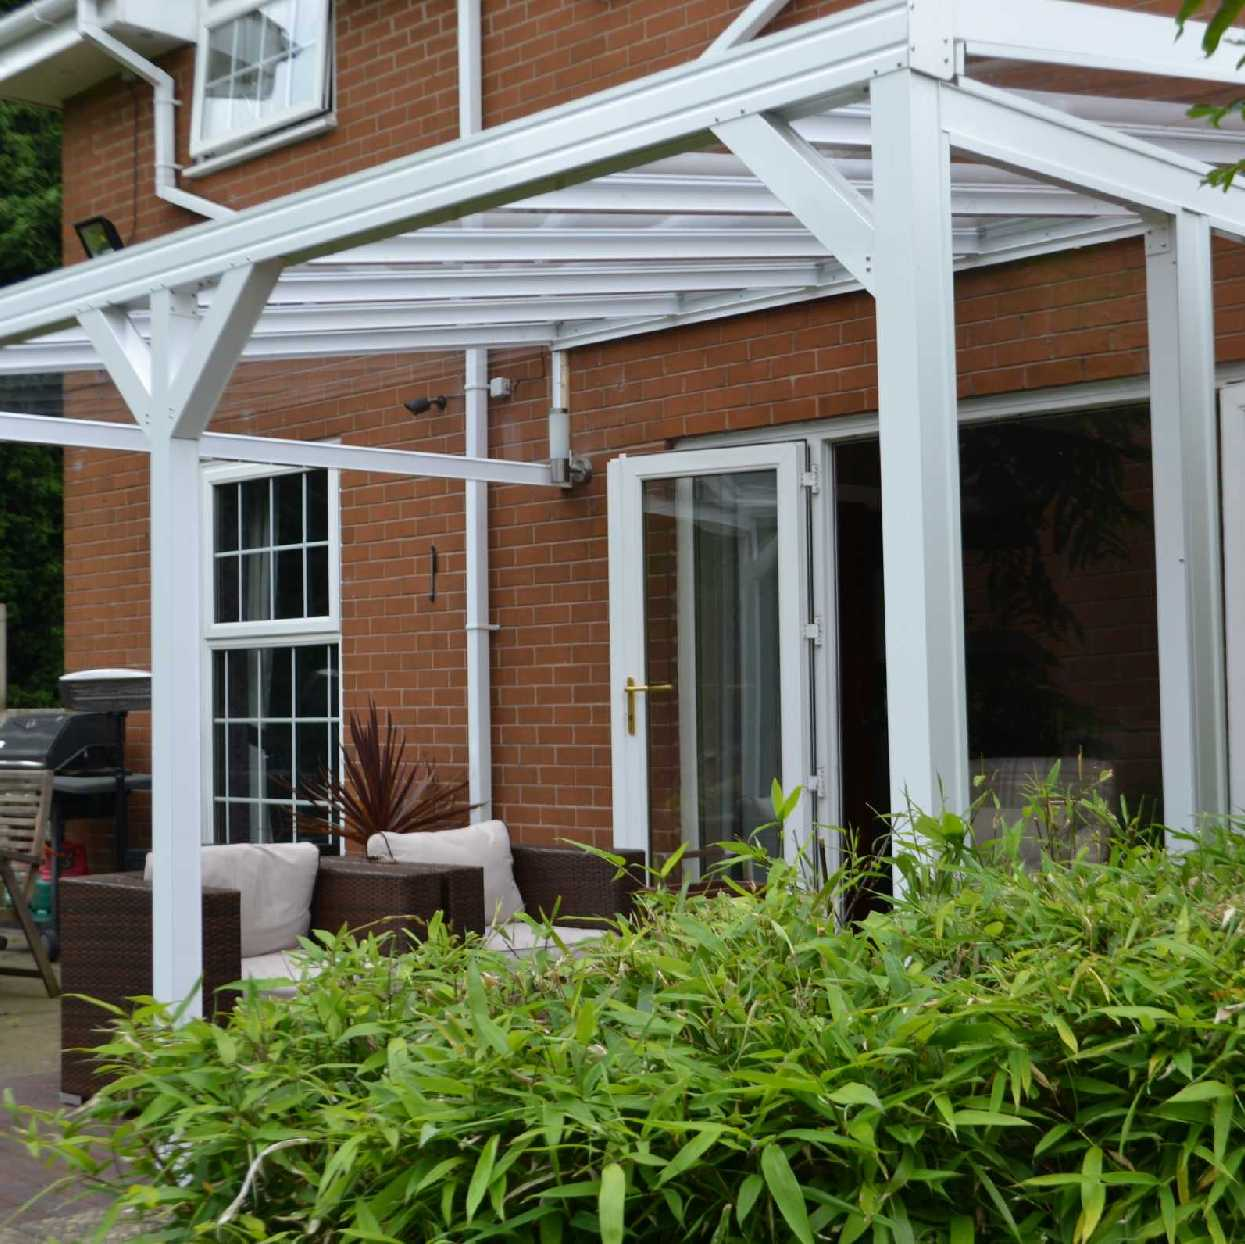 Omega Smart White Lean-To Canopy with 6mm Glass Clear Plate Polycarbonate Glazing - 5.6m (W) x 2.5m (P), (3) Supporting Posts from Omega Build